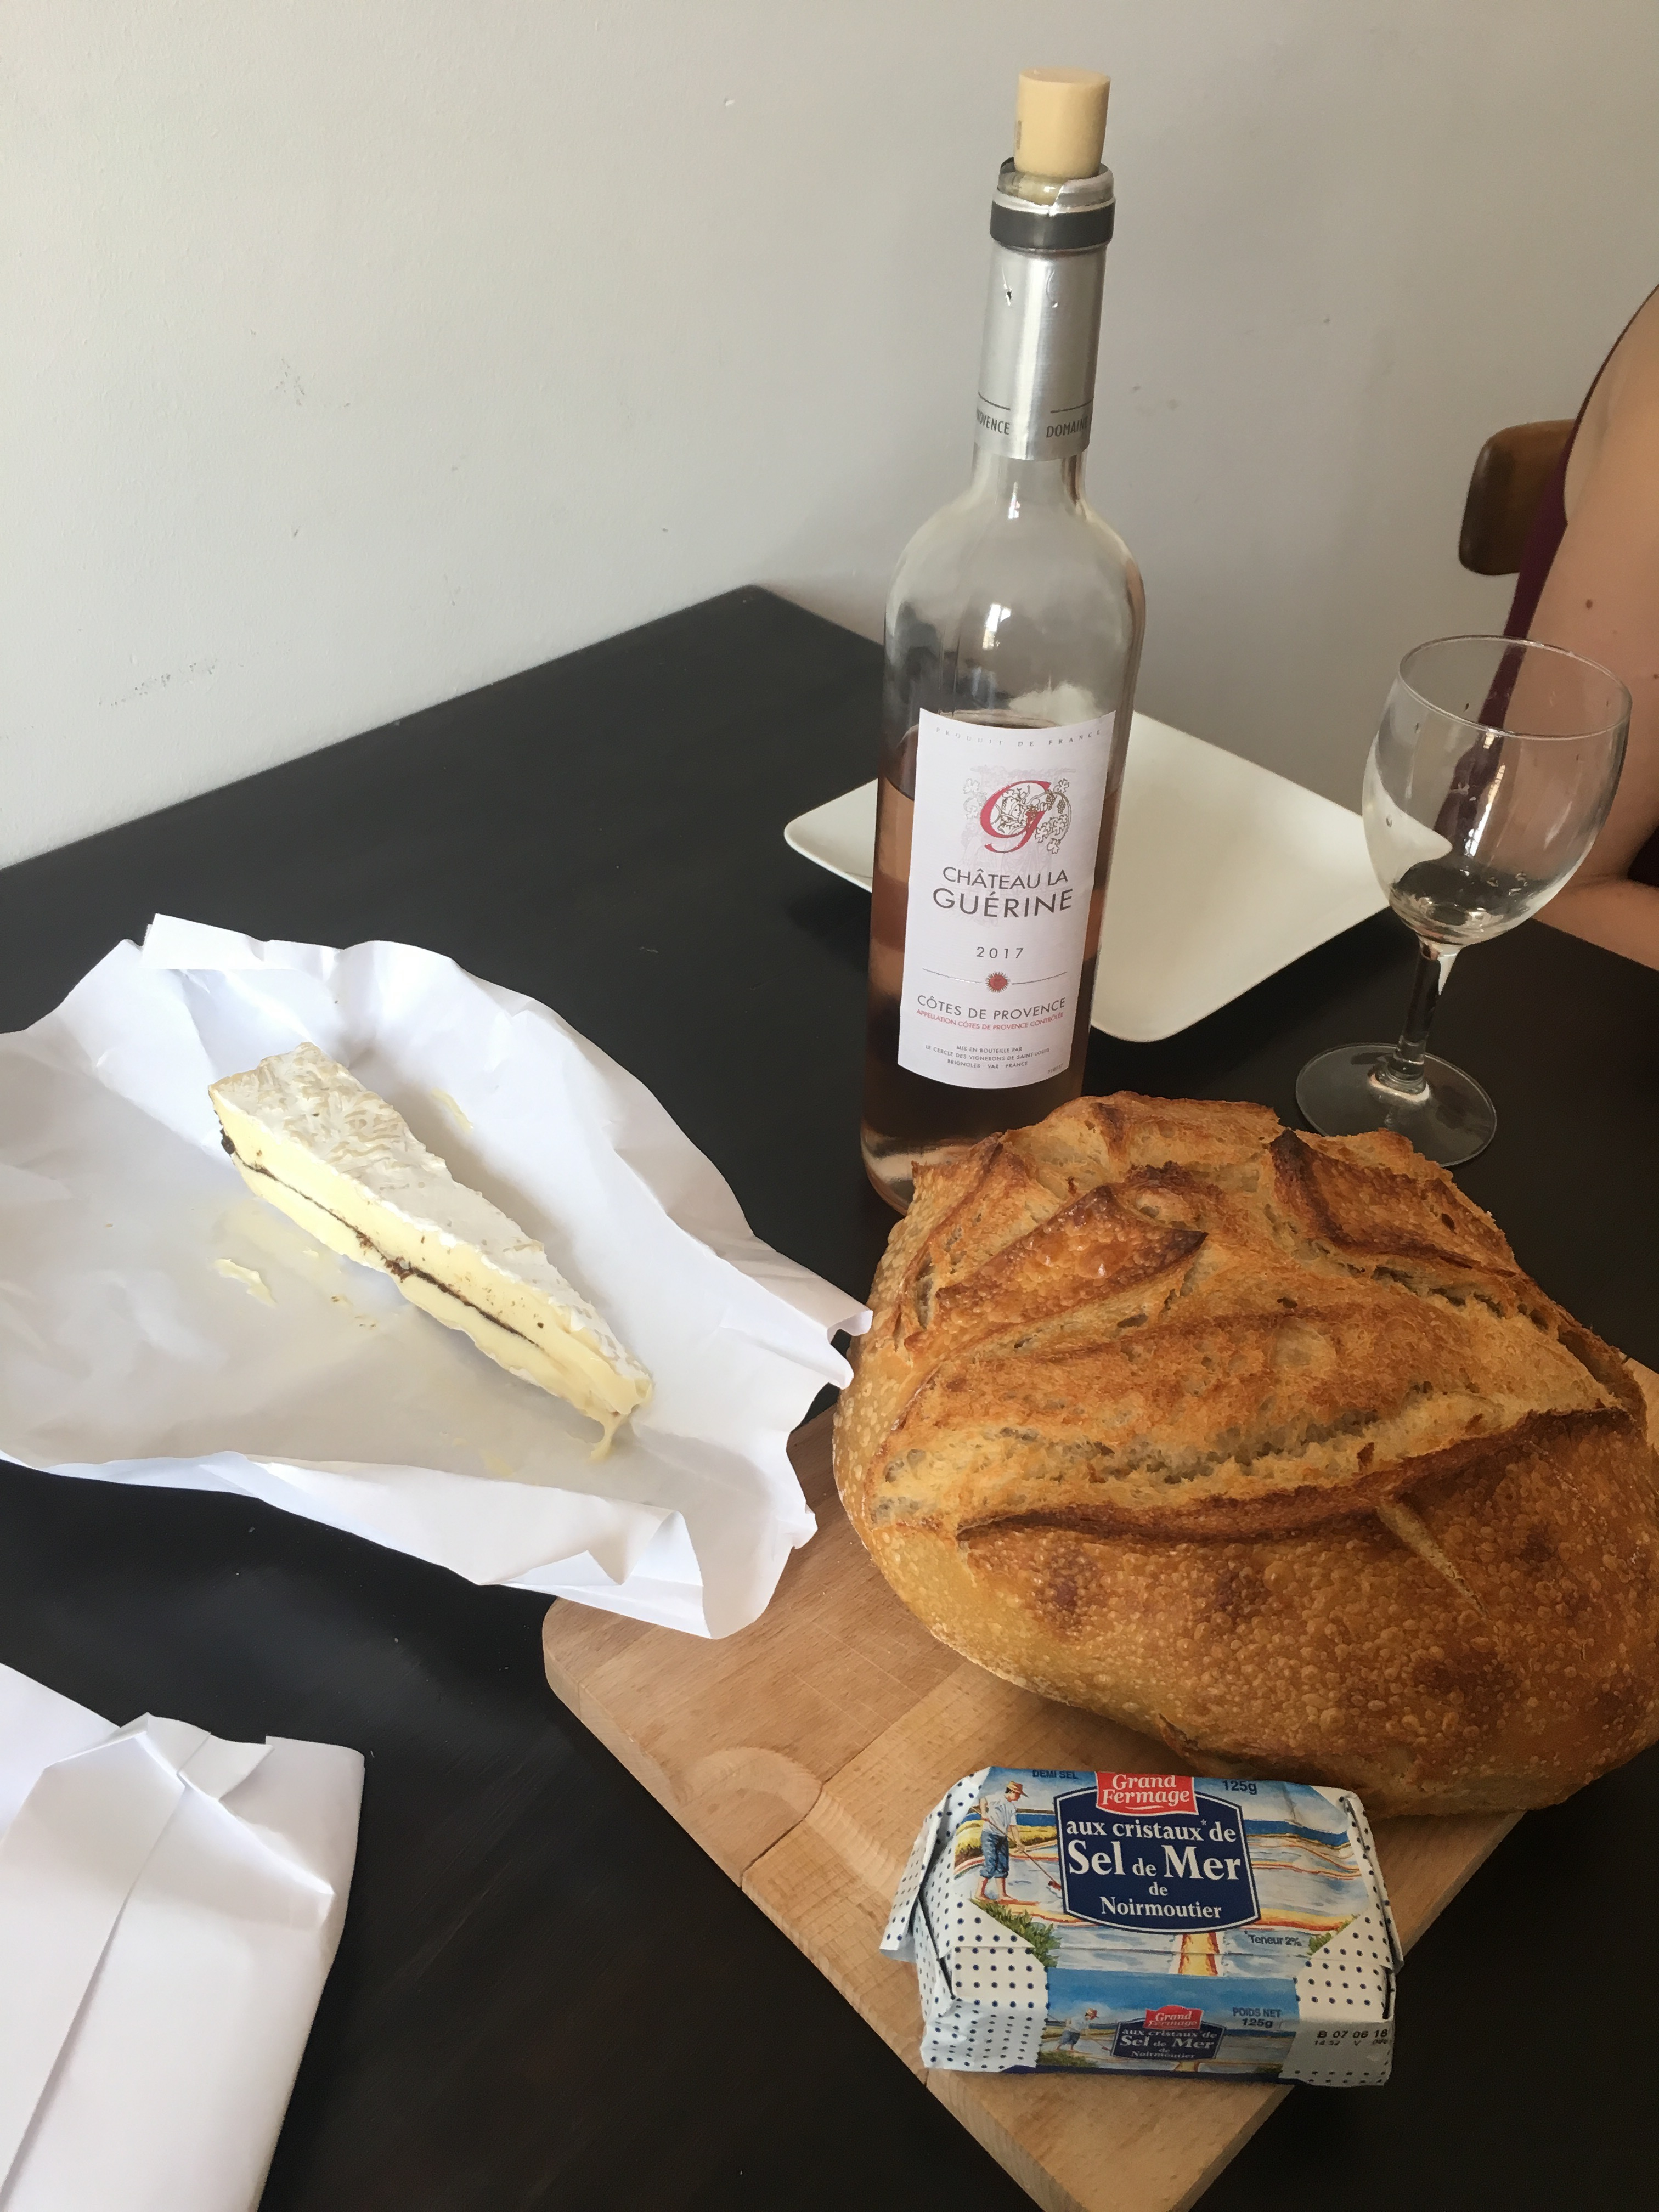 Bread, cheese, butter and wine. Food groups covered.